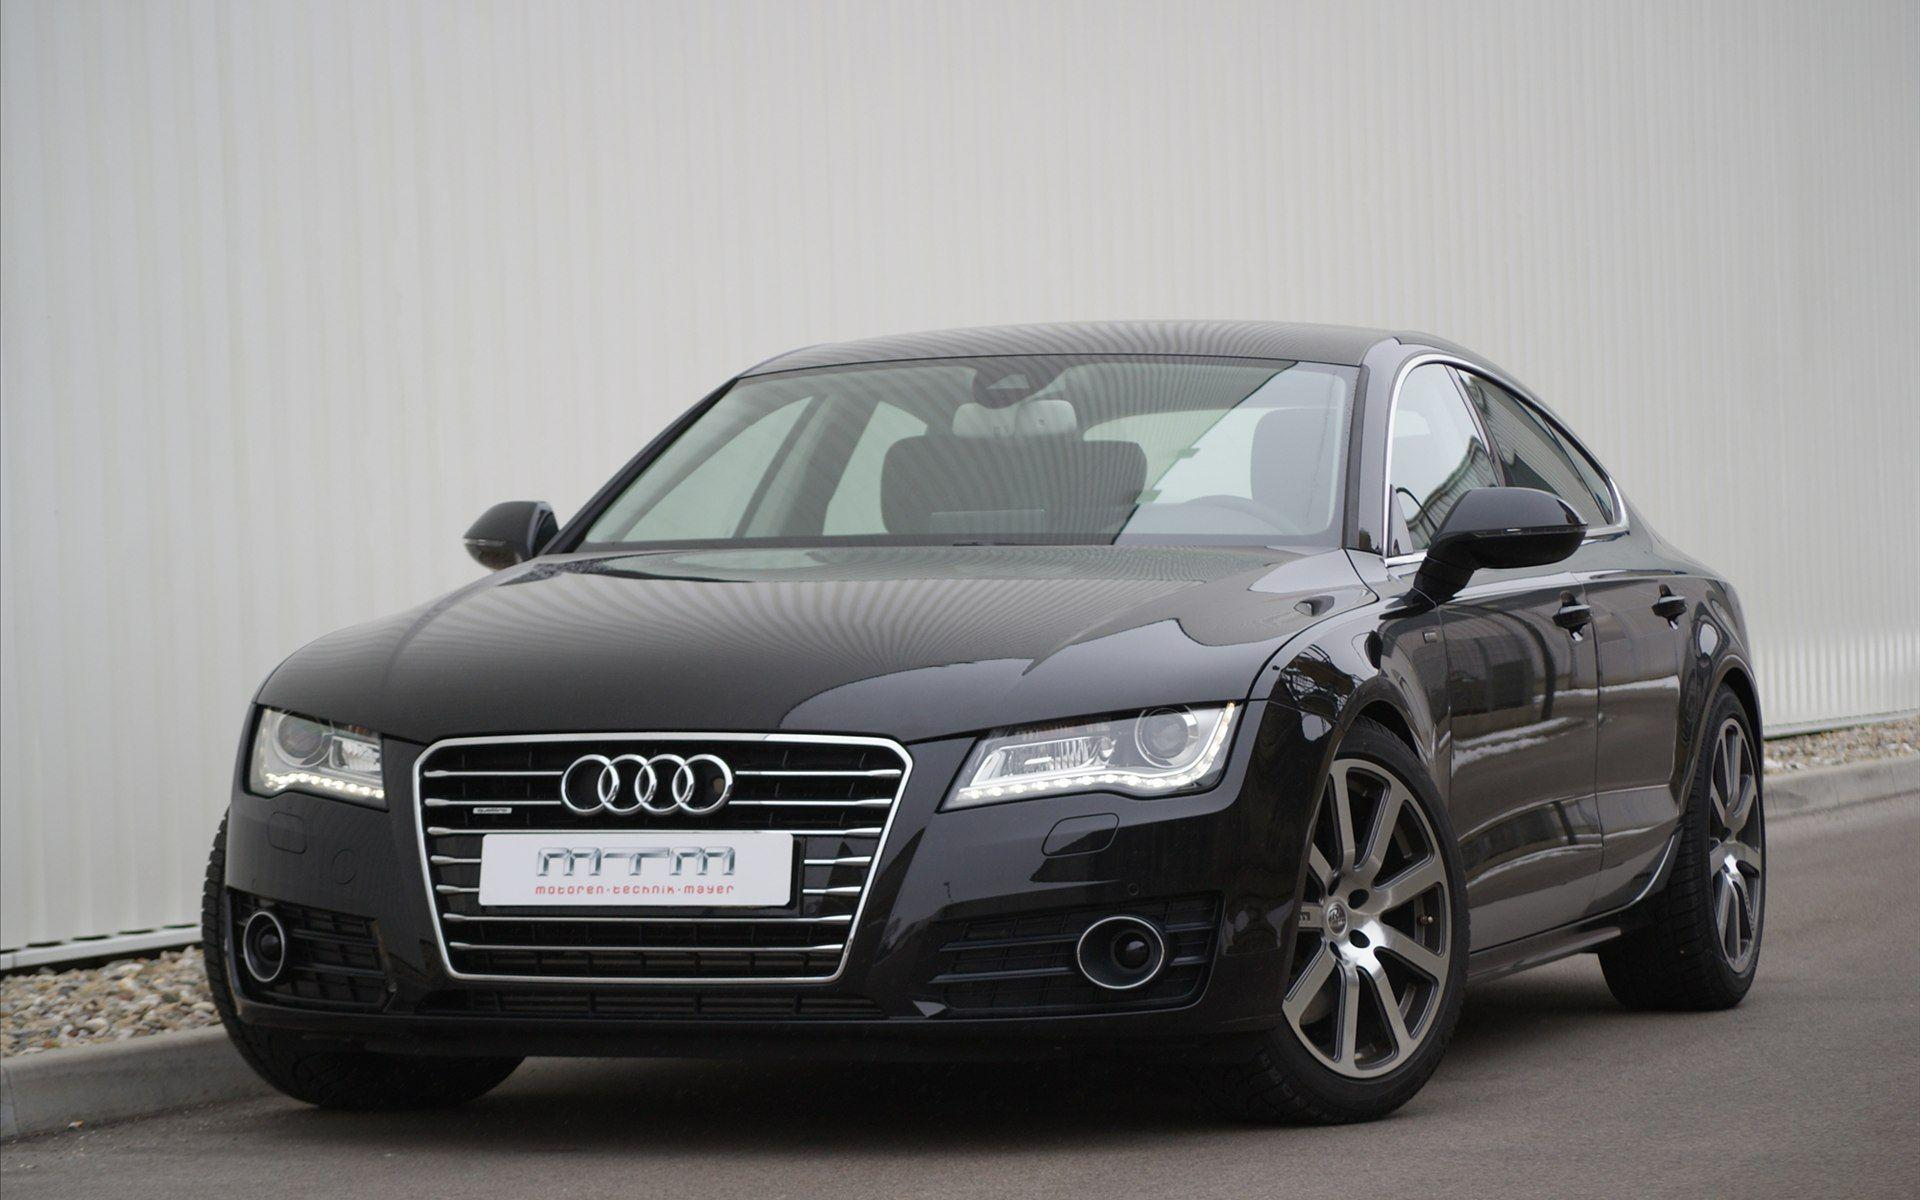 Audi A7 HD Wallpapers Audi A7 high quality and definition, Full H